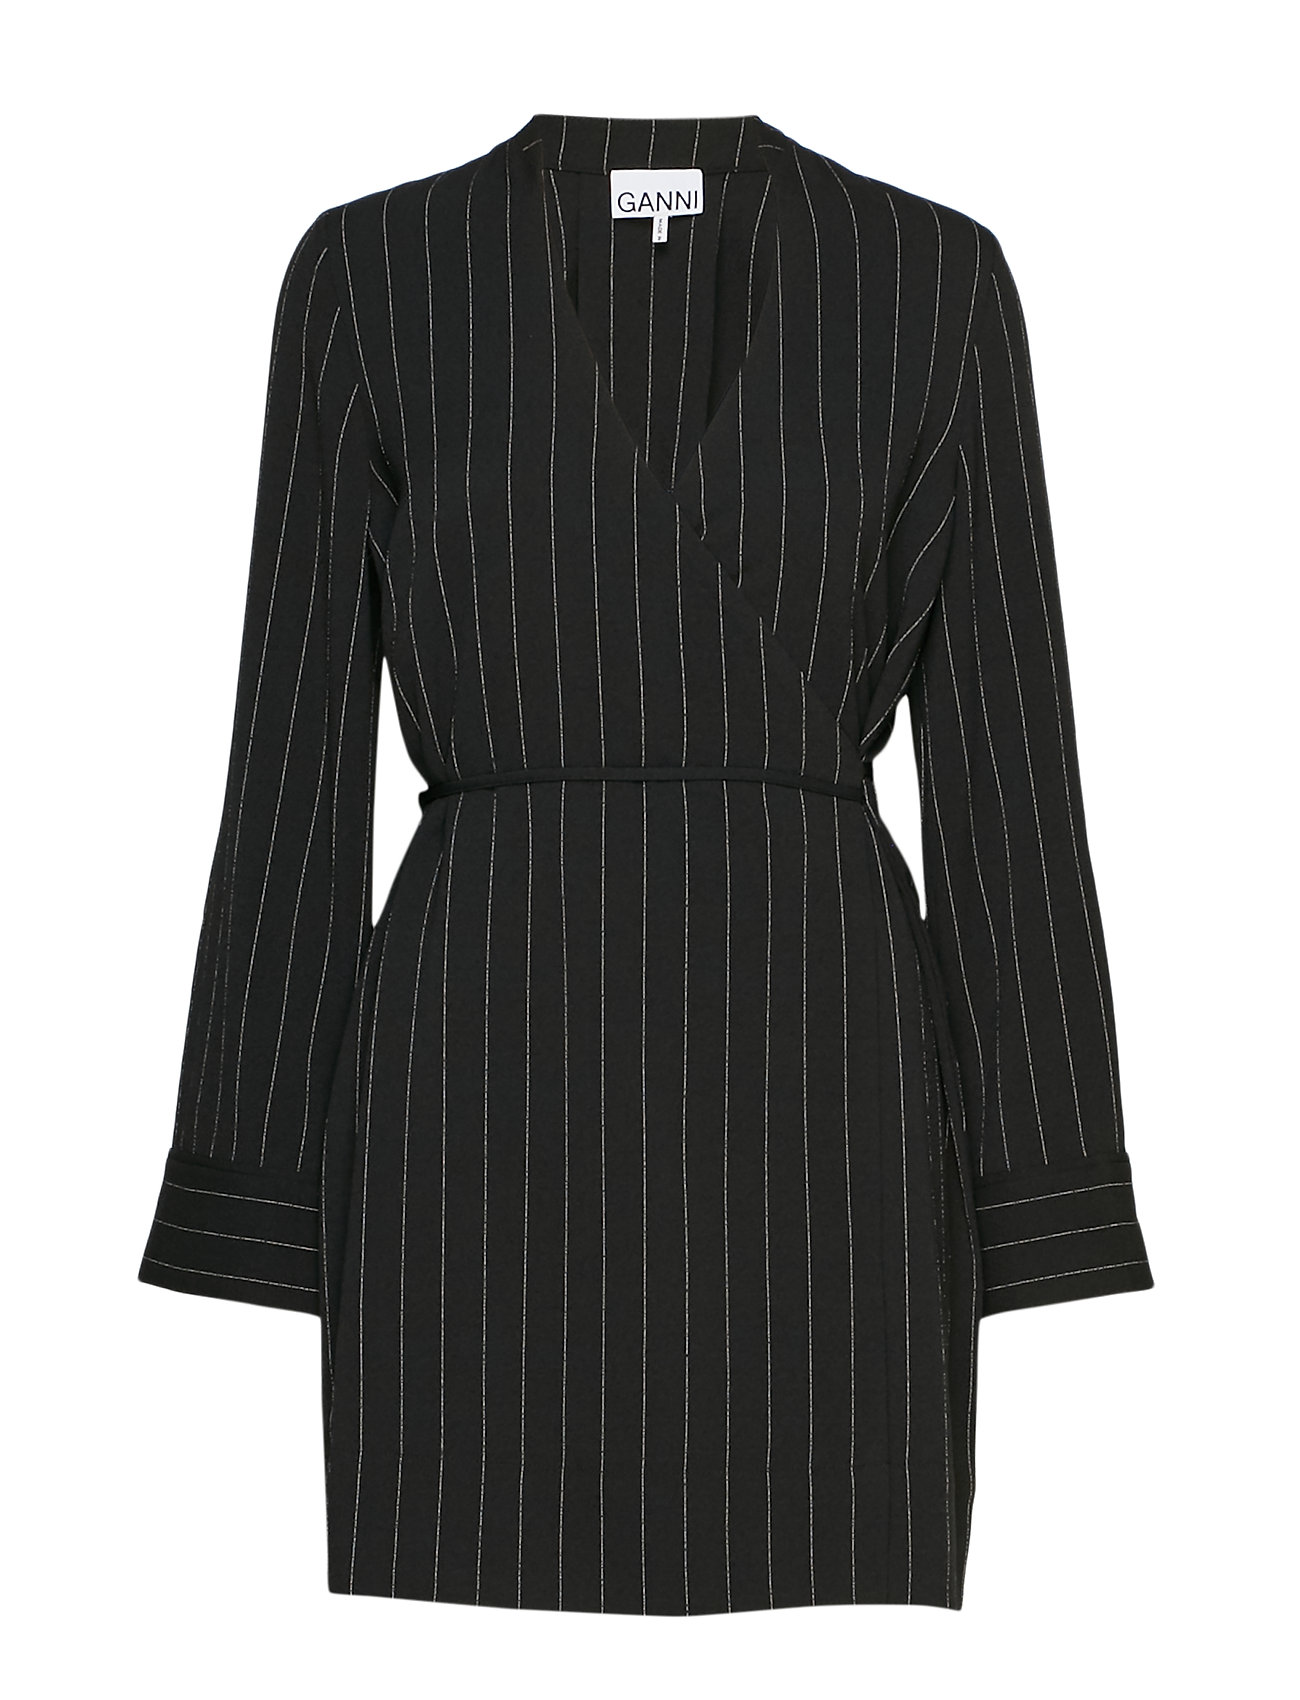 Ganni Heavy Crepe Blazer Dress - BLACK